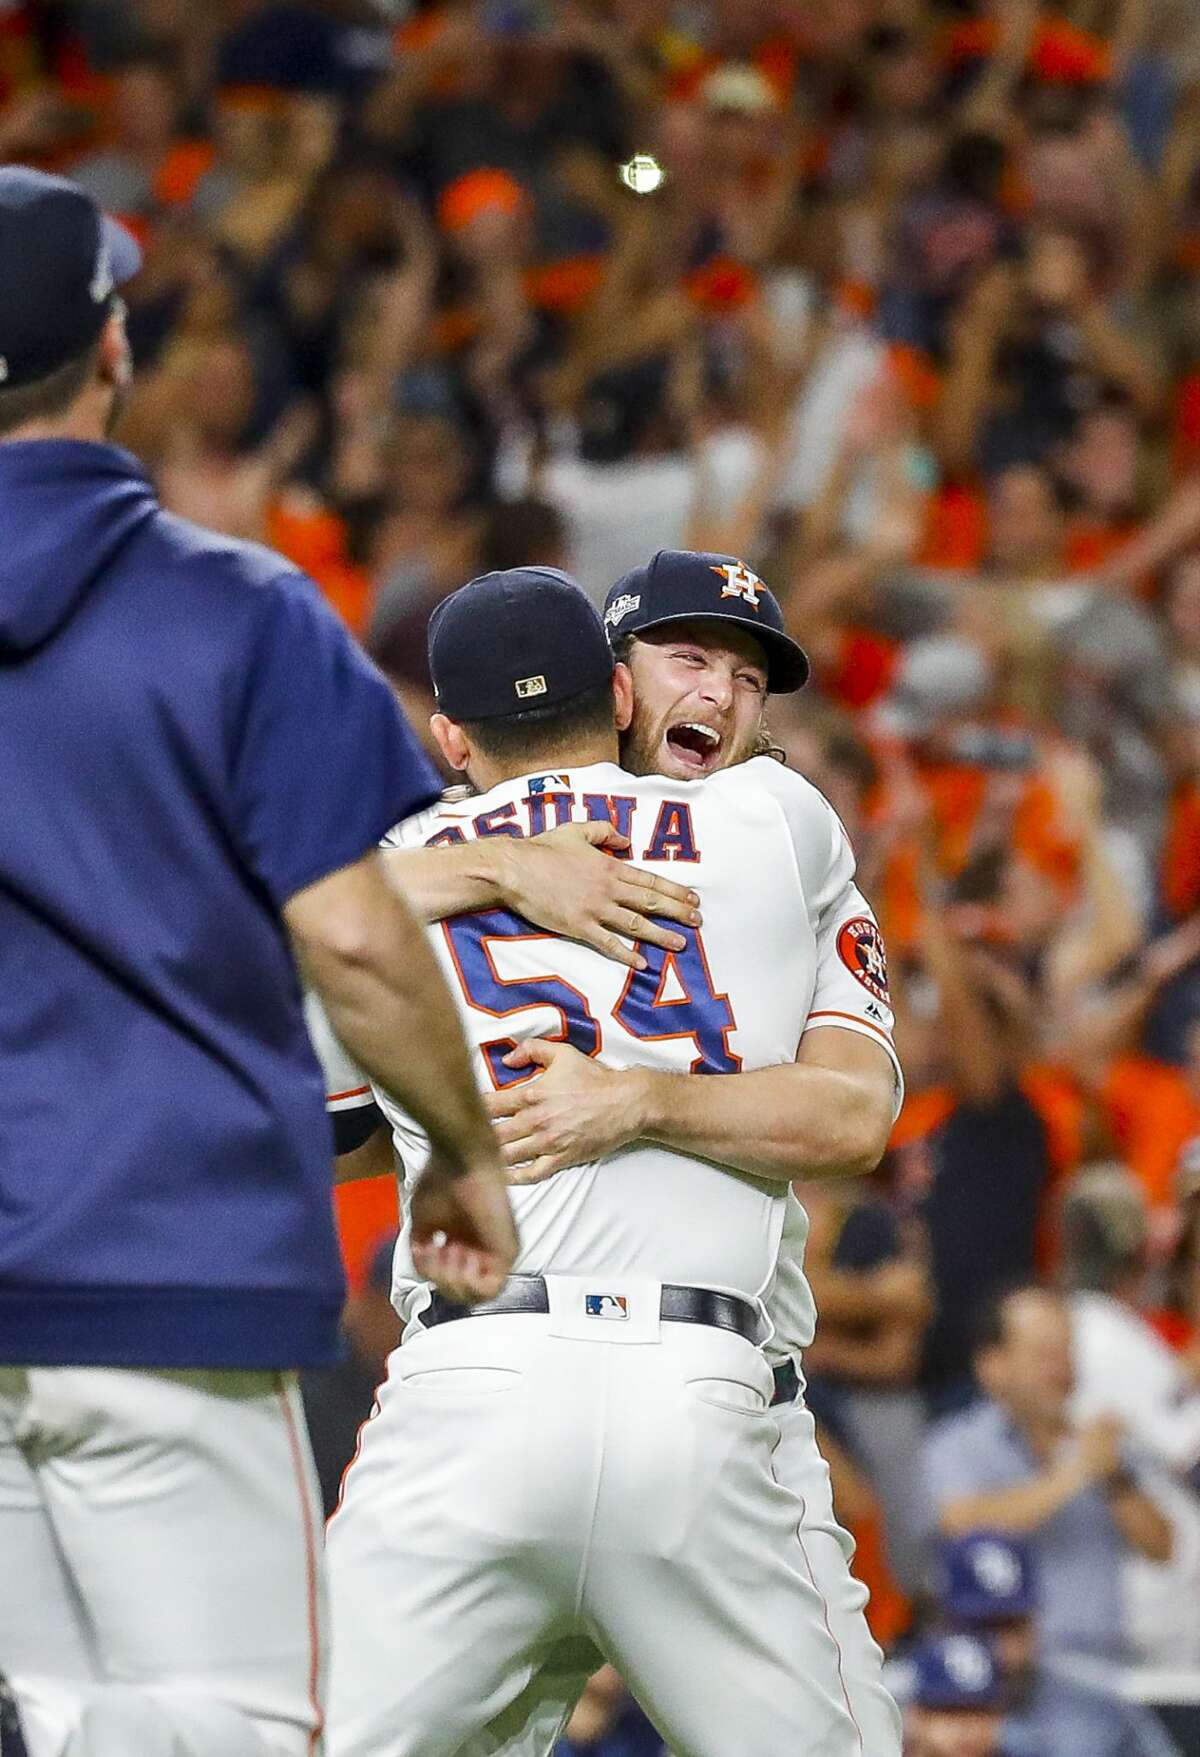 Houston Astros starting pitcher Gerrit Cole (45) hugs relief pitcher Roberto Osuna (54) as the Astros win Game 5 of the American League Division Series at Minute Maid Park in Houston, on Thursday, Oct. 10, 2019.